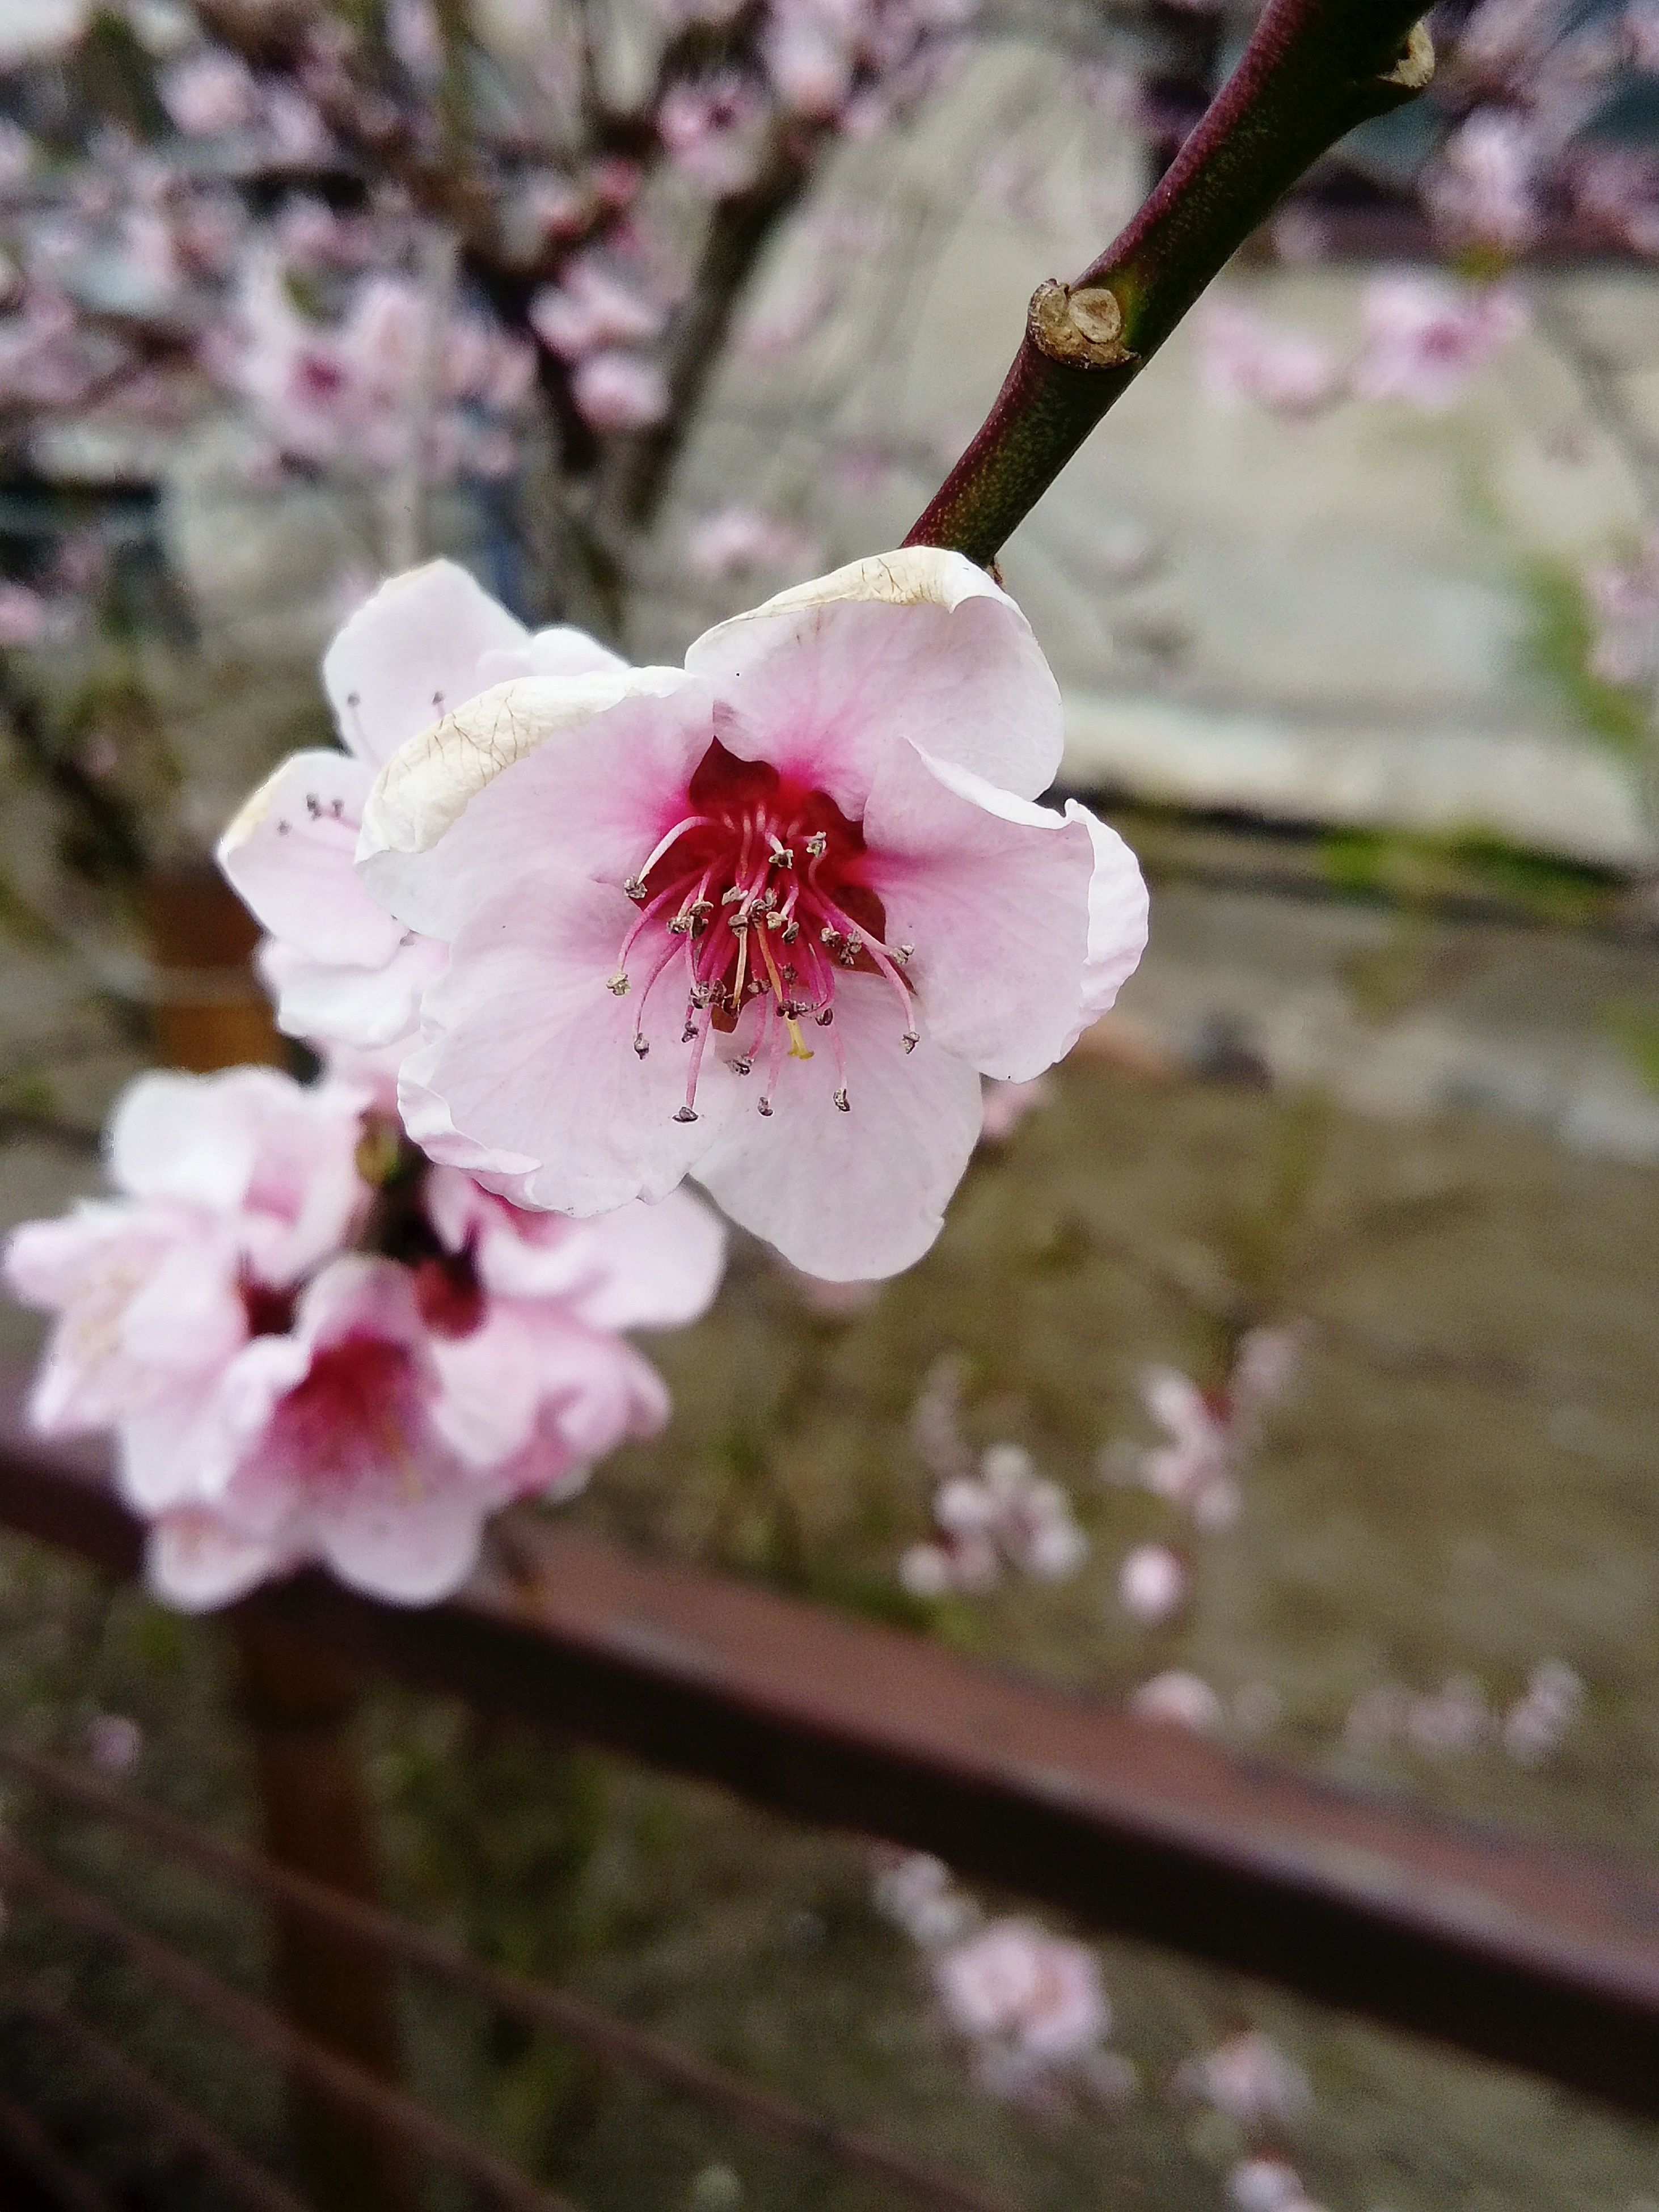 flower, nature, growth, close-up, beauty in nature, no people, pink color, fragility, plant, blossom, branch, tree, outdoors, freshness, flower head, almond tree, day, plum blossom, sky